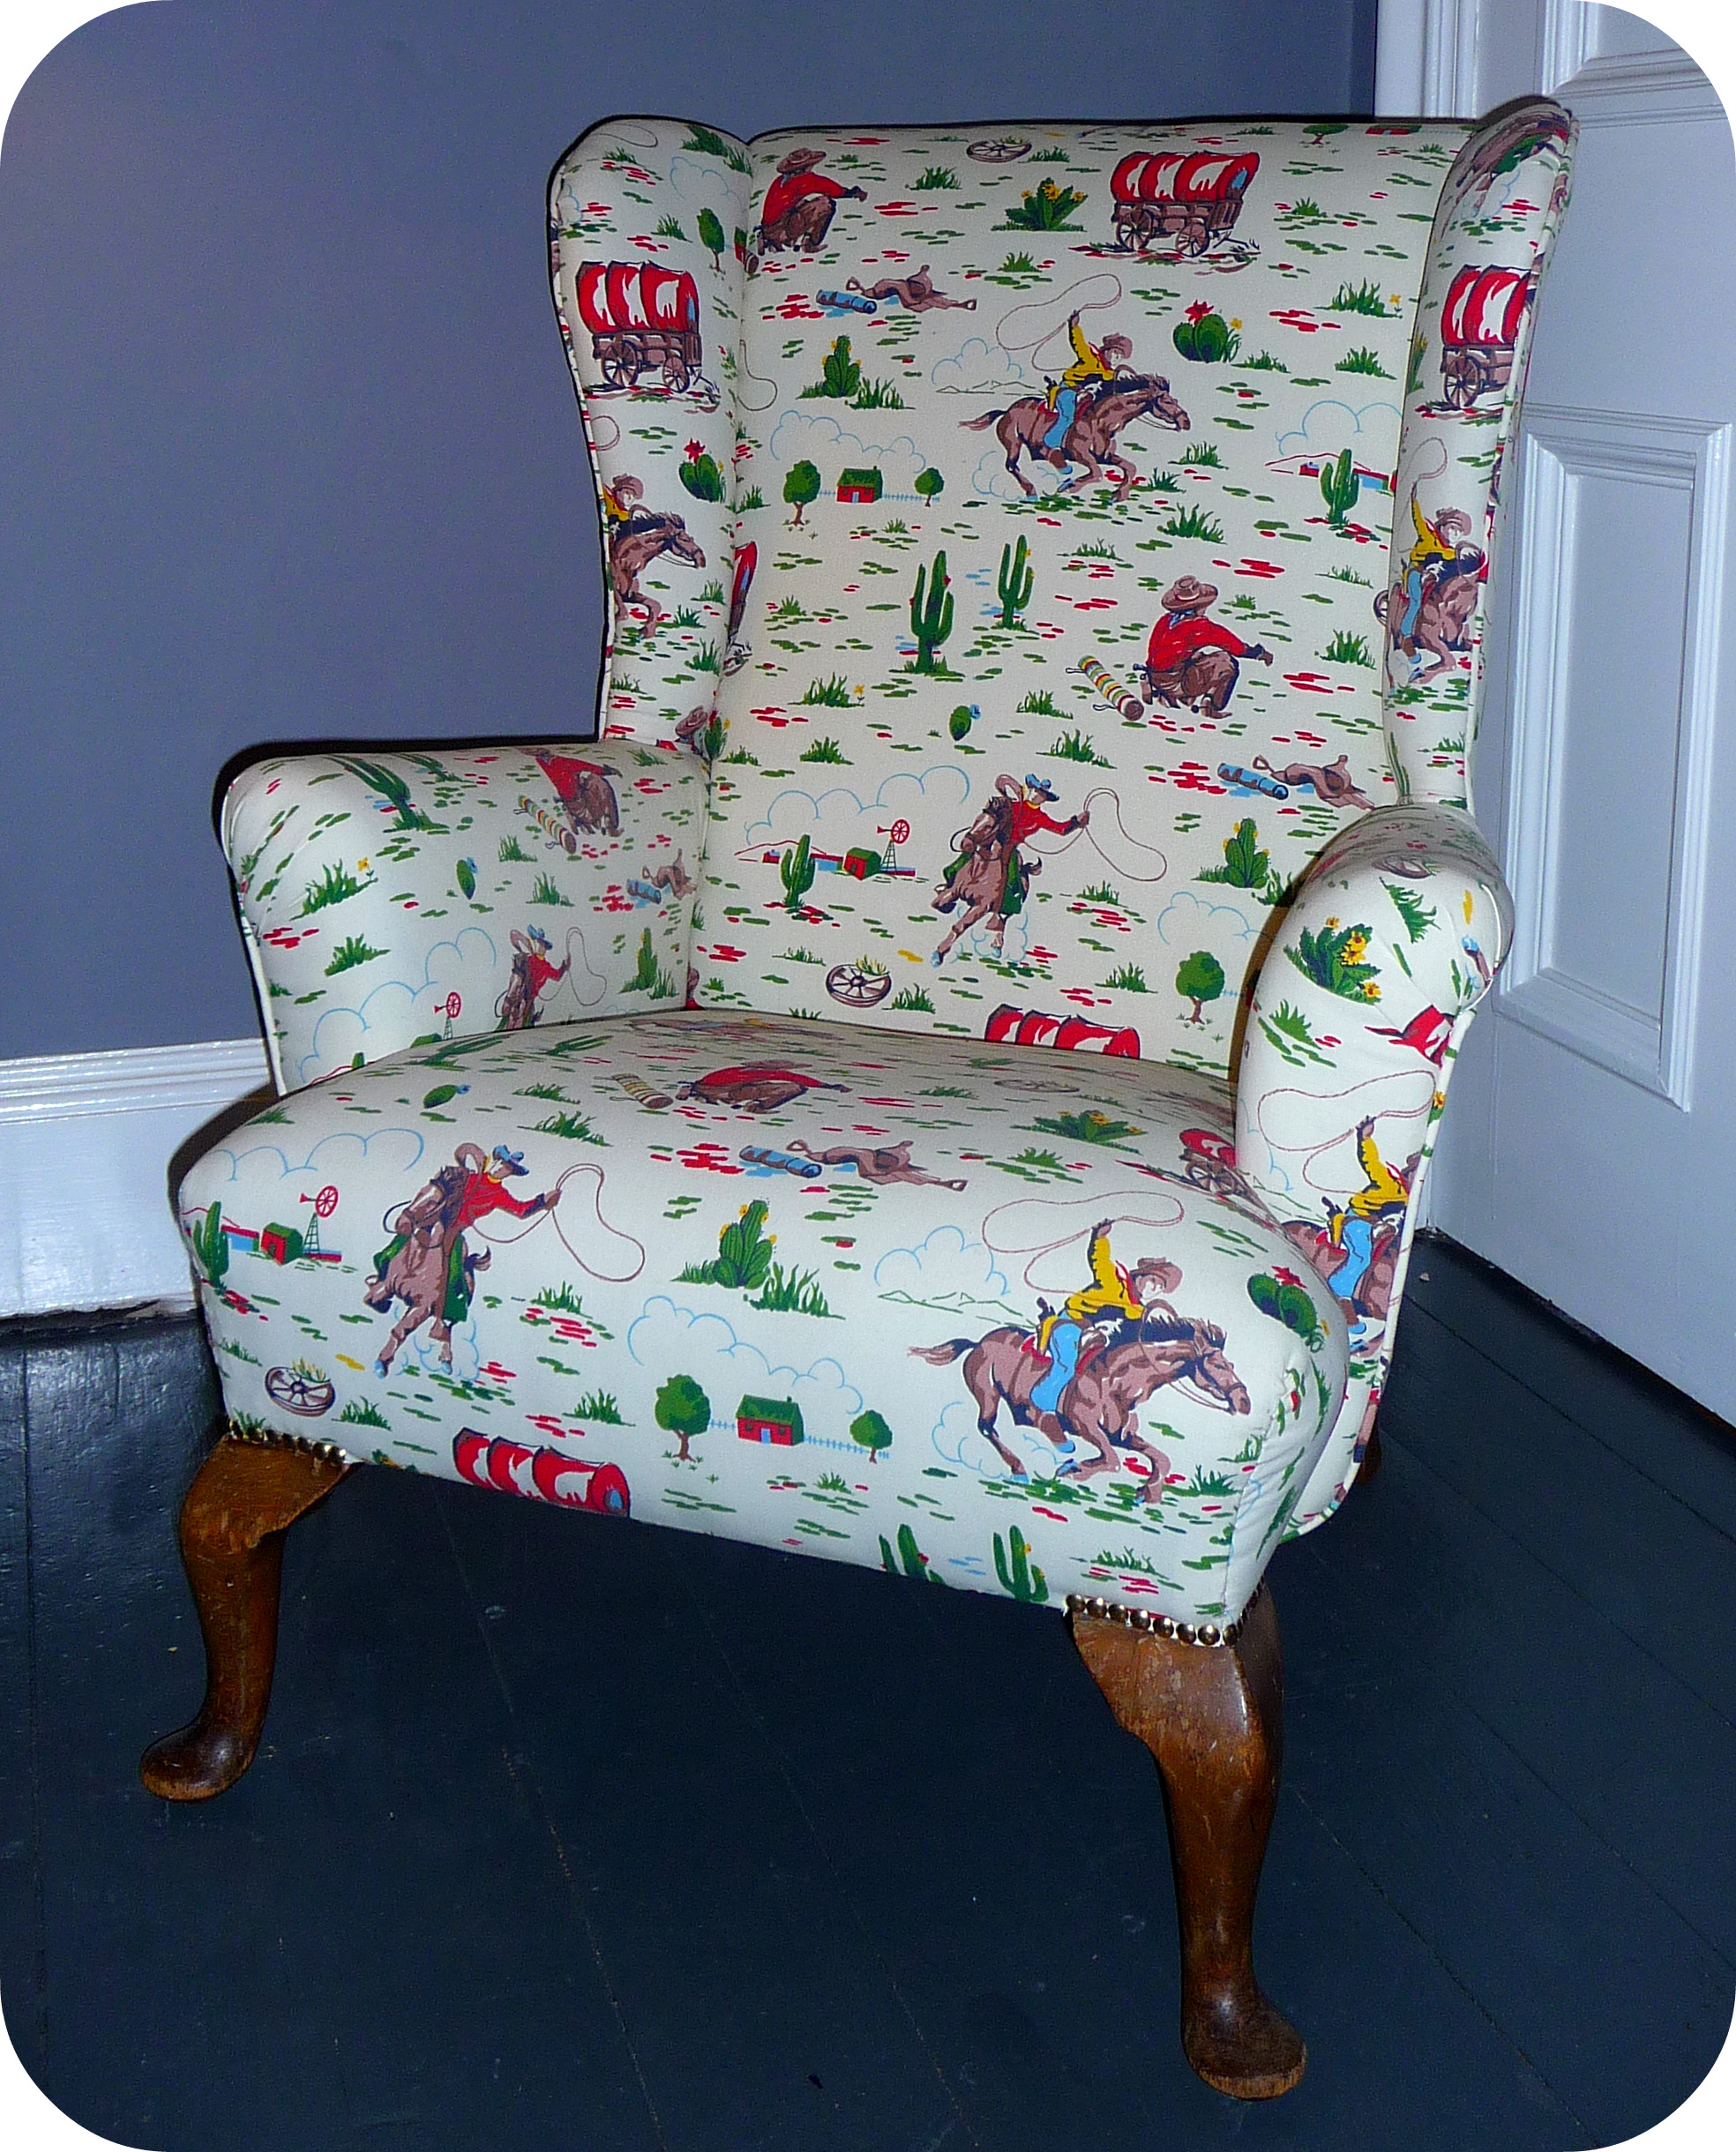 yeeha it s our before and after parker knoll conversation pieces